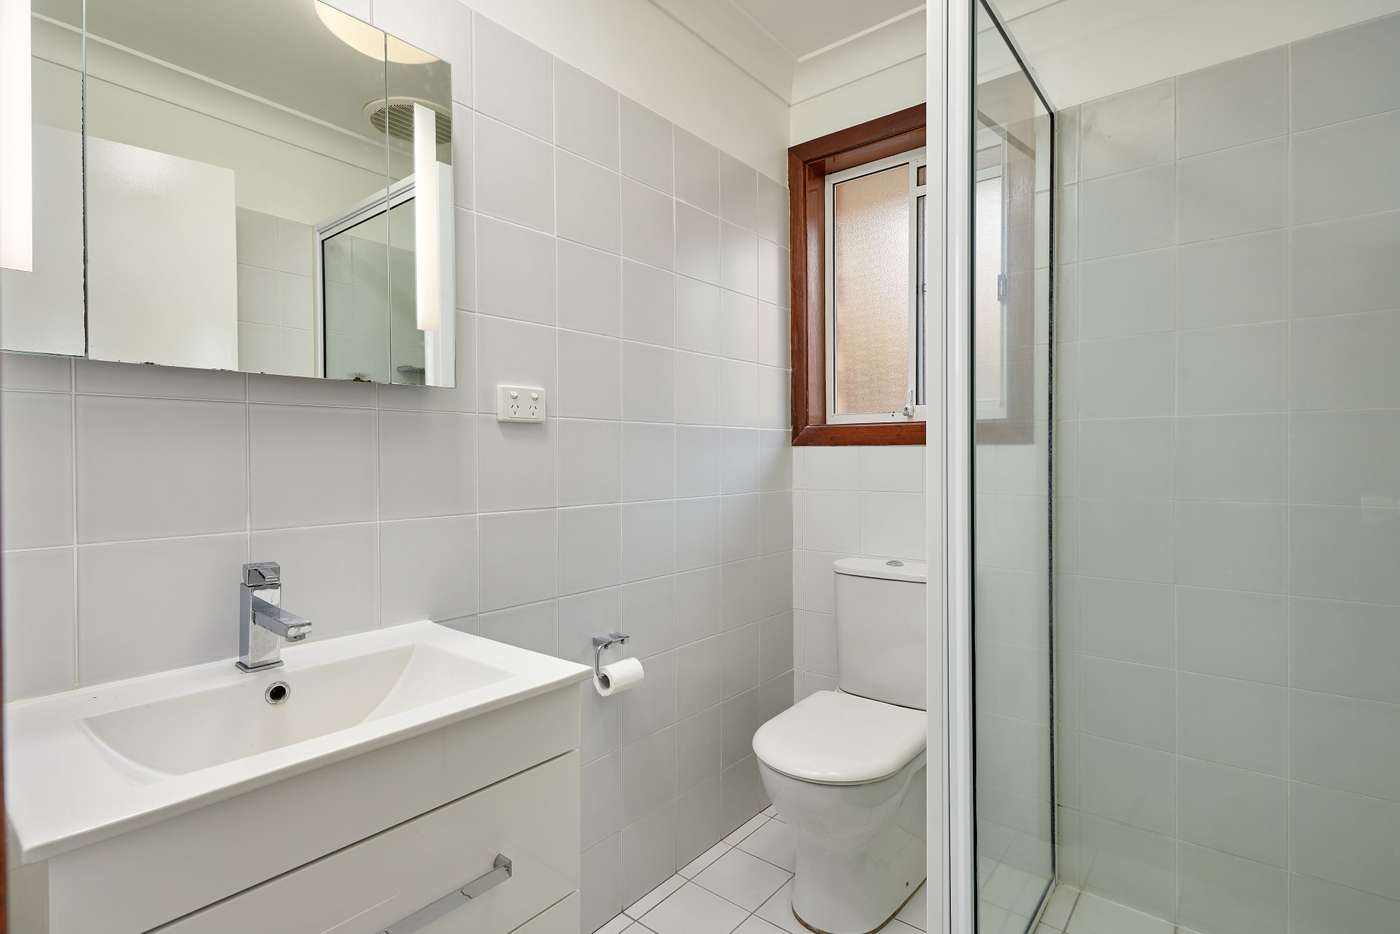 Sixth view of Homely unit listing, 2/21 Incarnie Crescent, Wagga Wagga NSW 2650